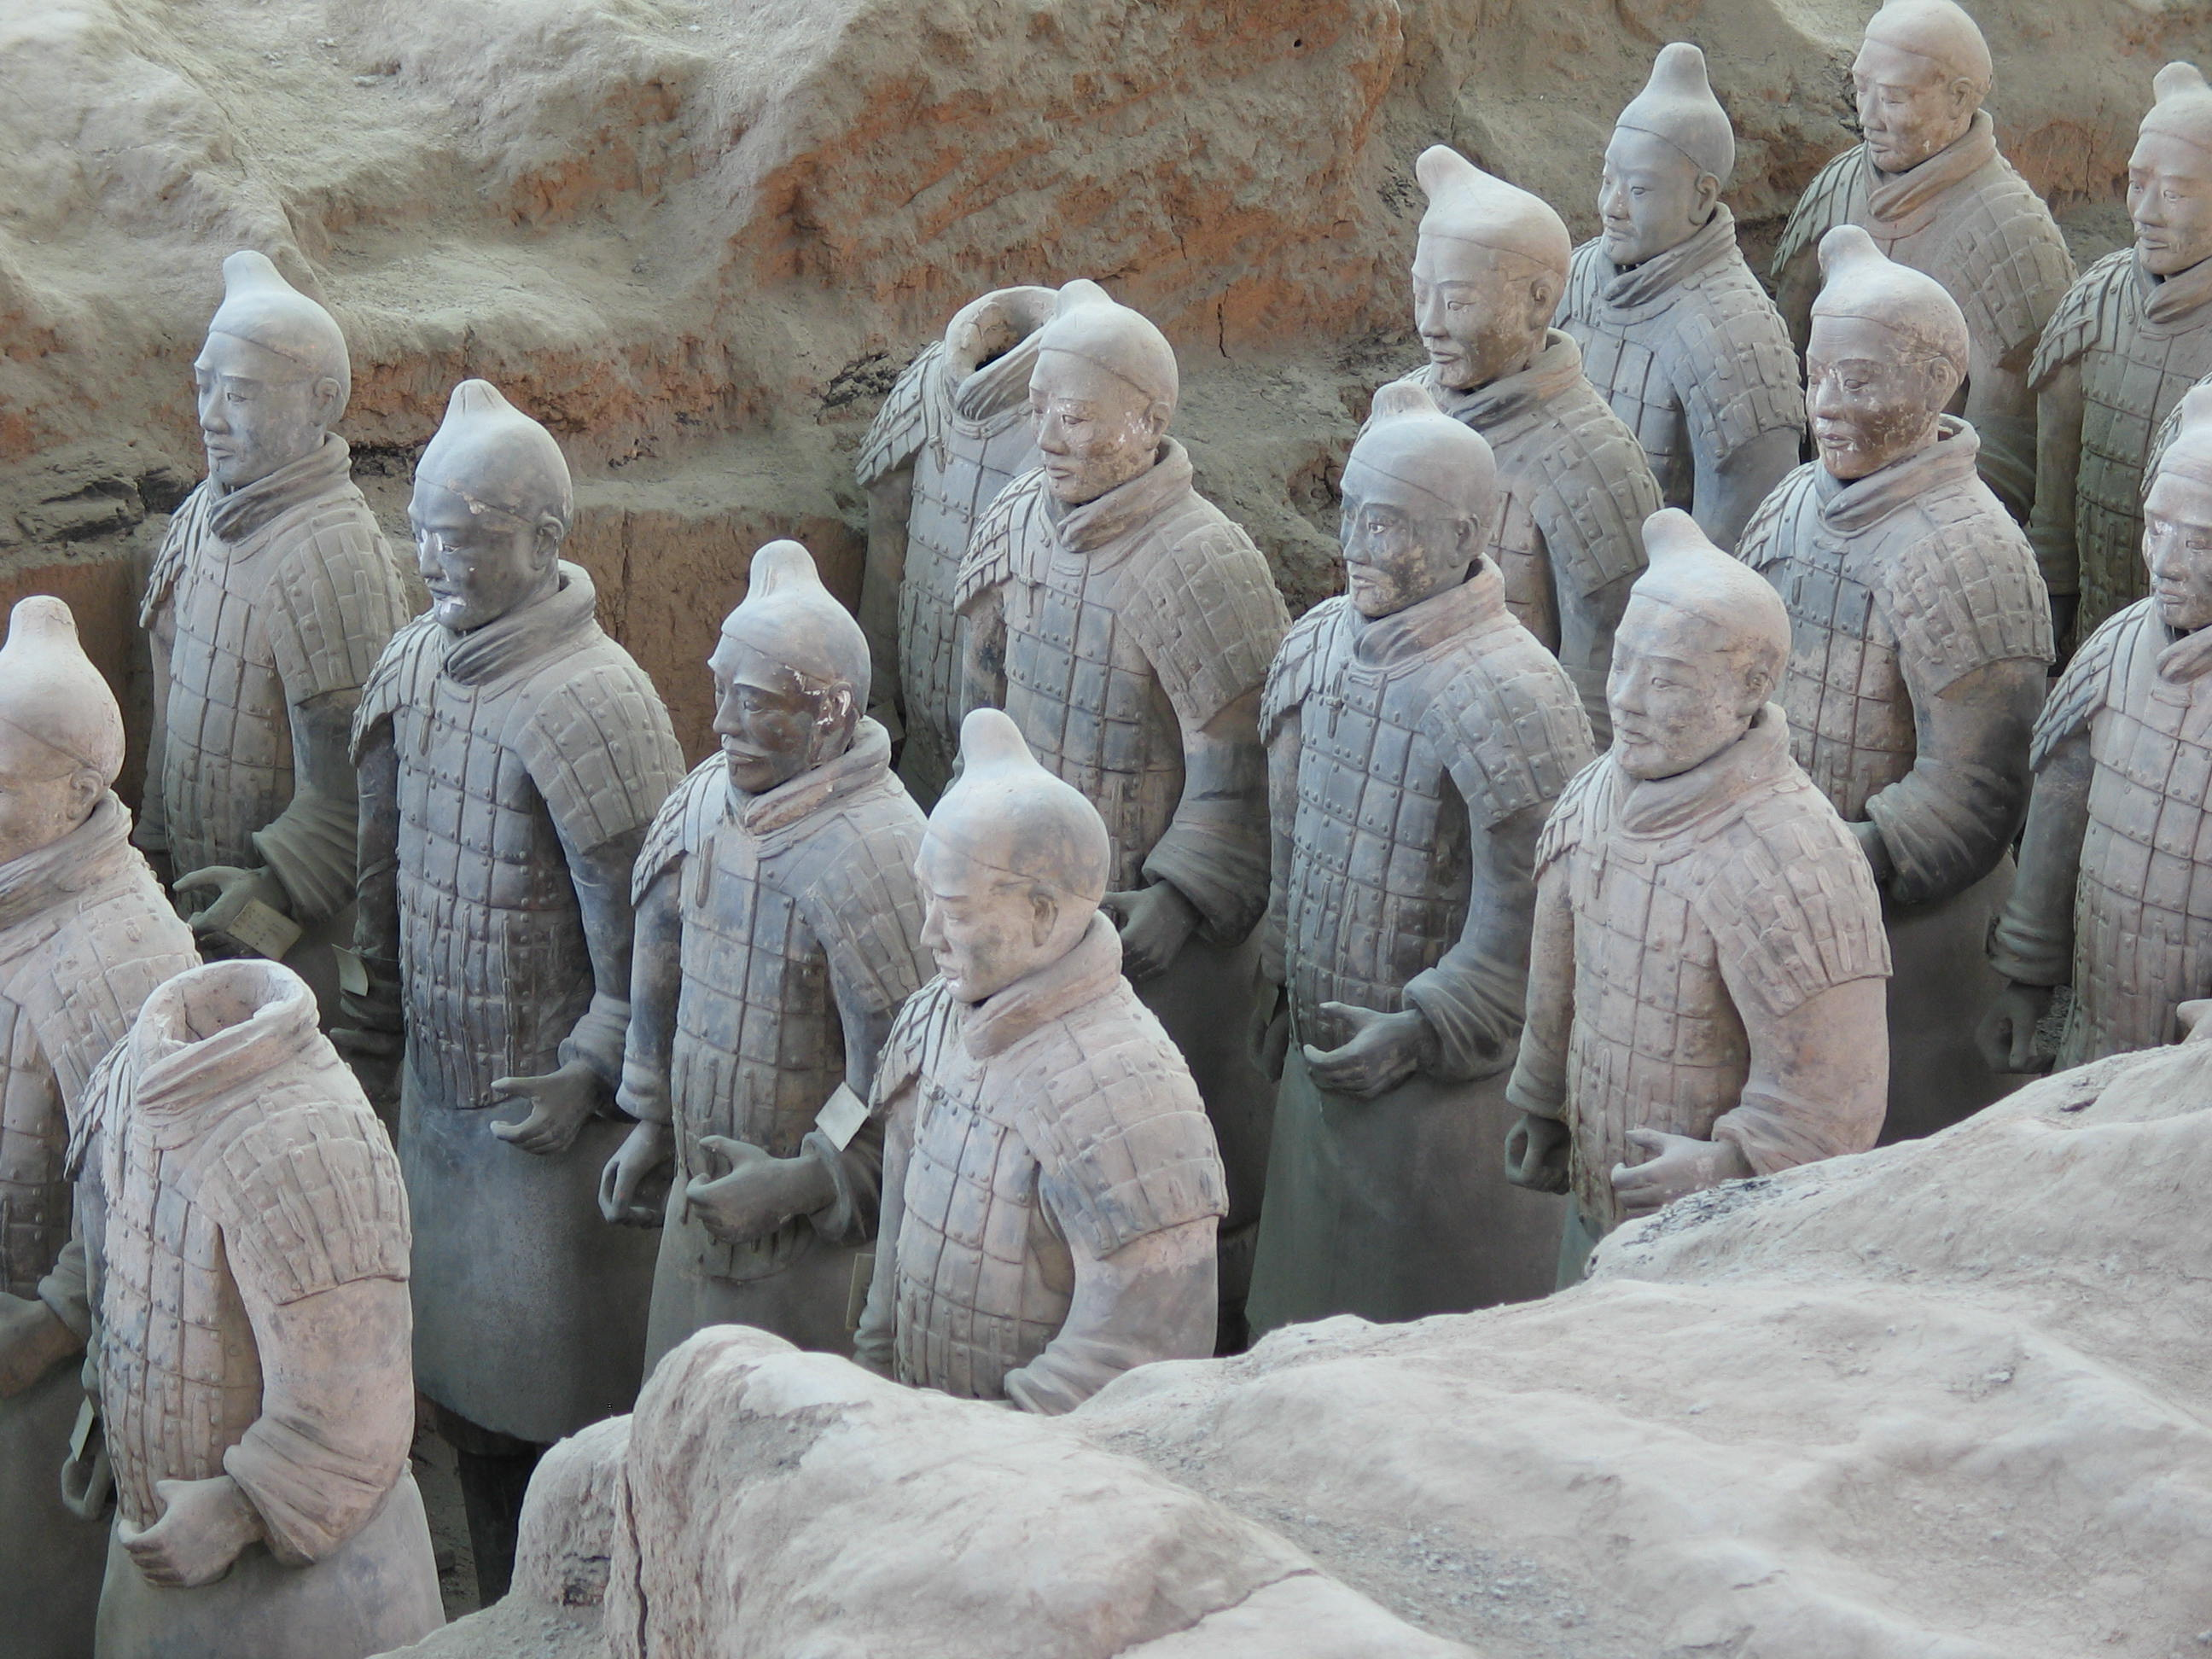 The Qin Dynasty In China The Great Wall Amp Legalism